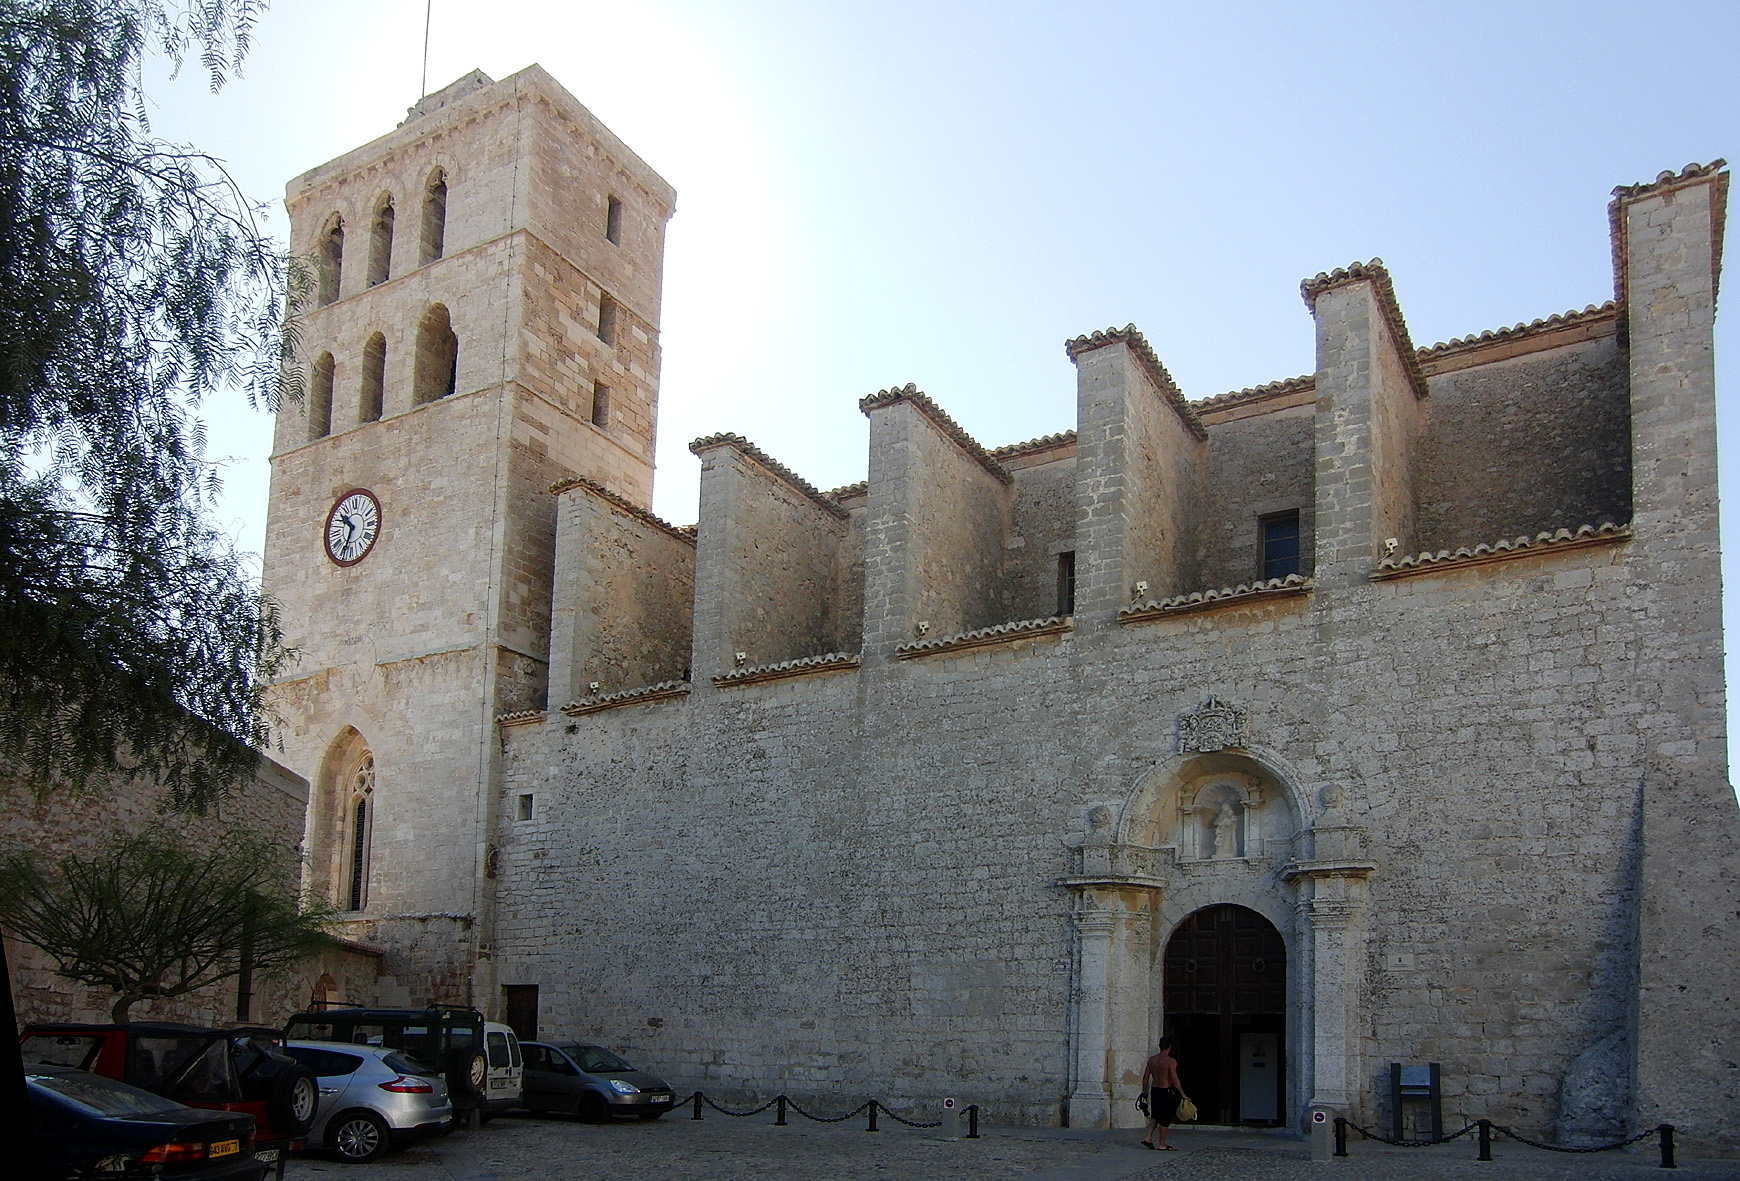 Ibiza Cathedral is one of the attractions in Ibiza